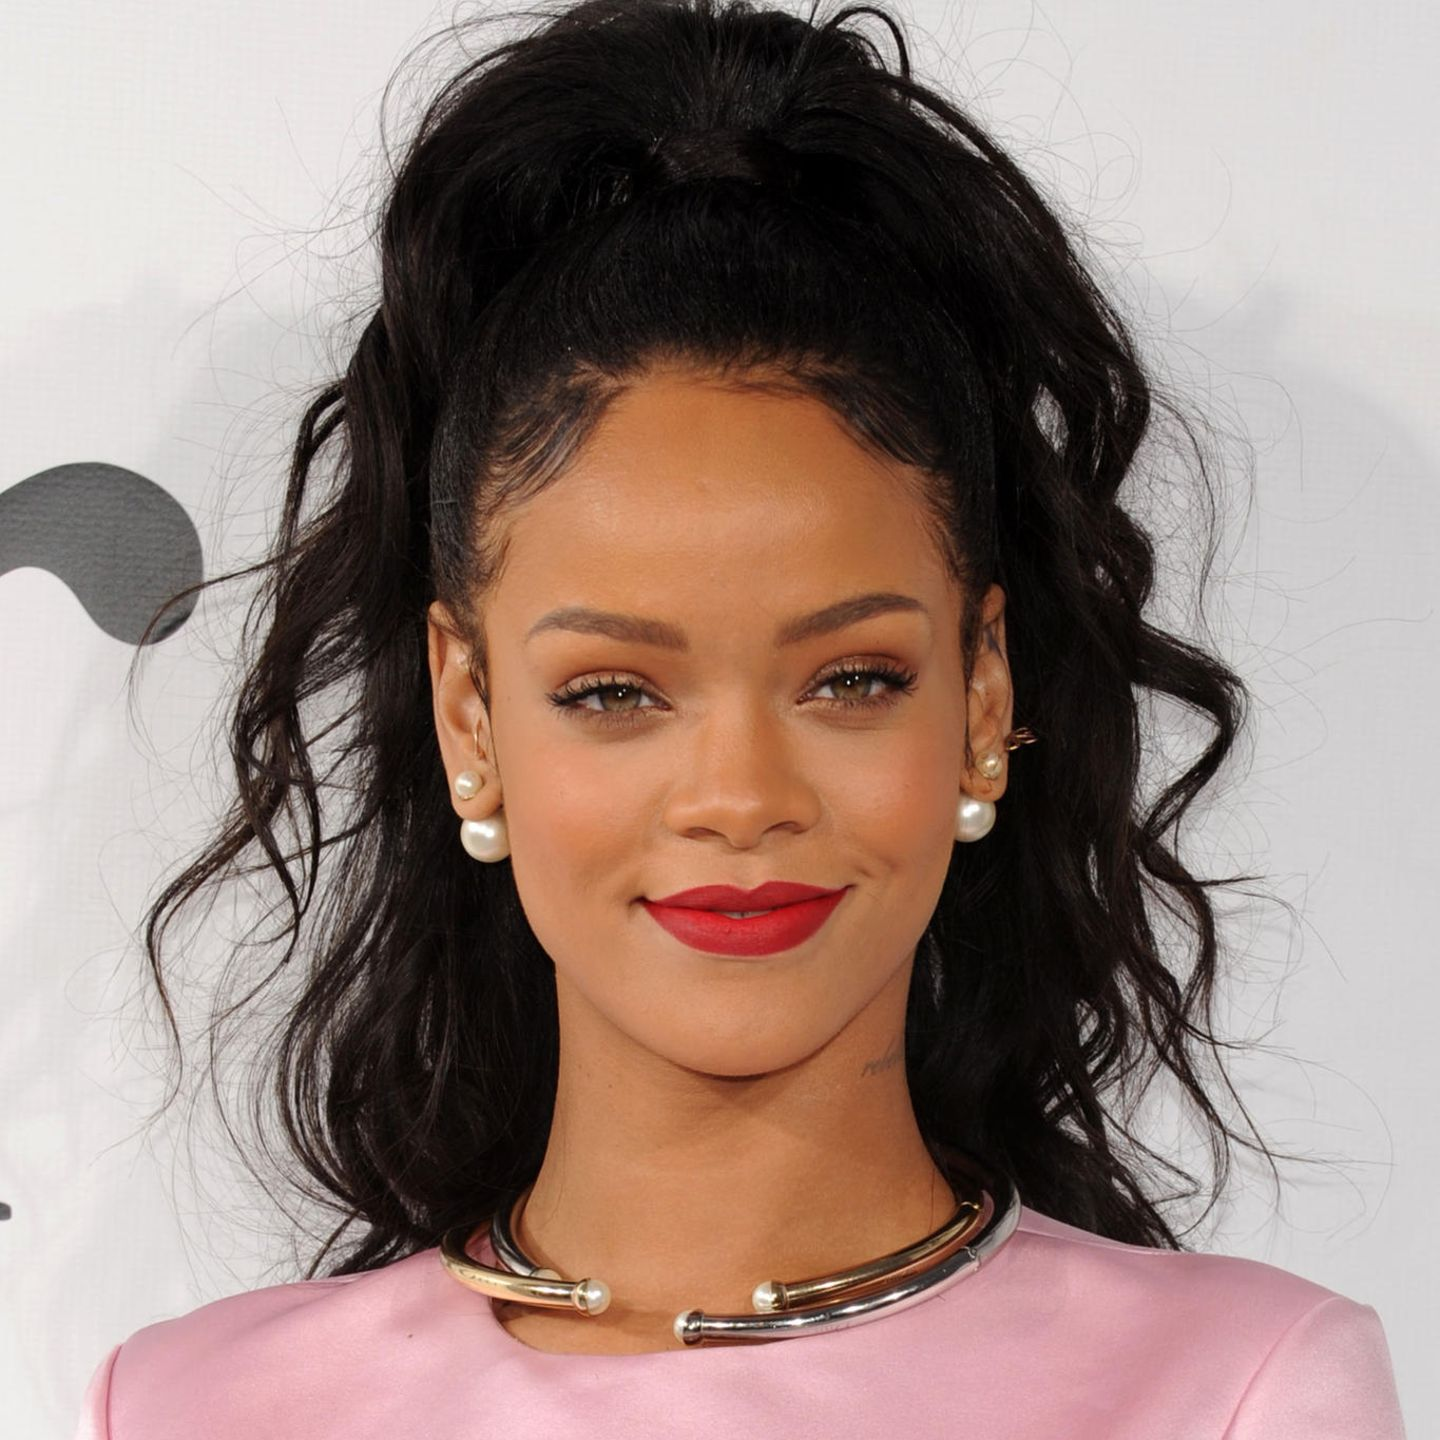 Rihanna Age Songs Stay Biography